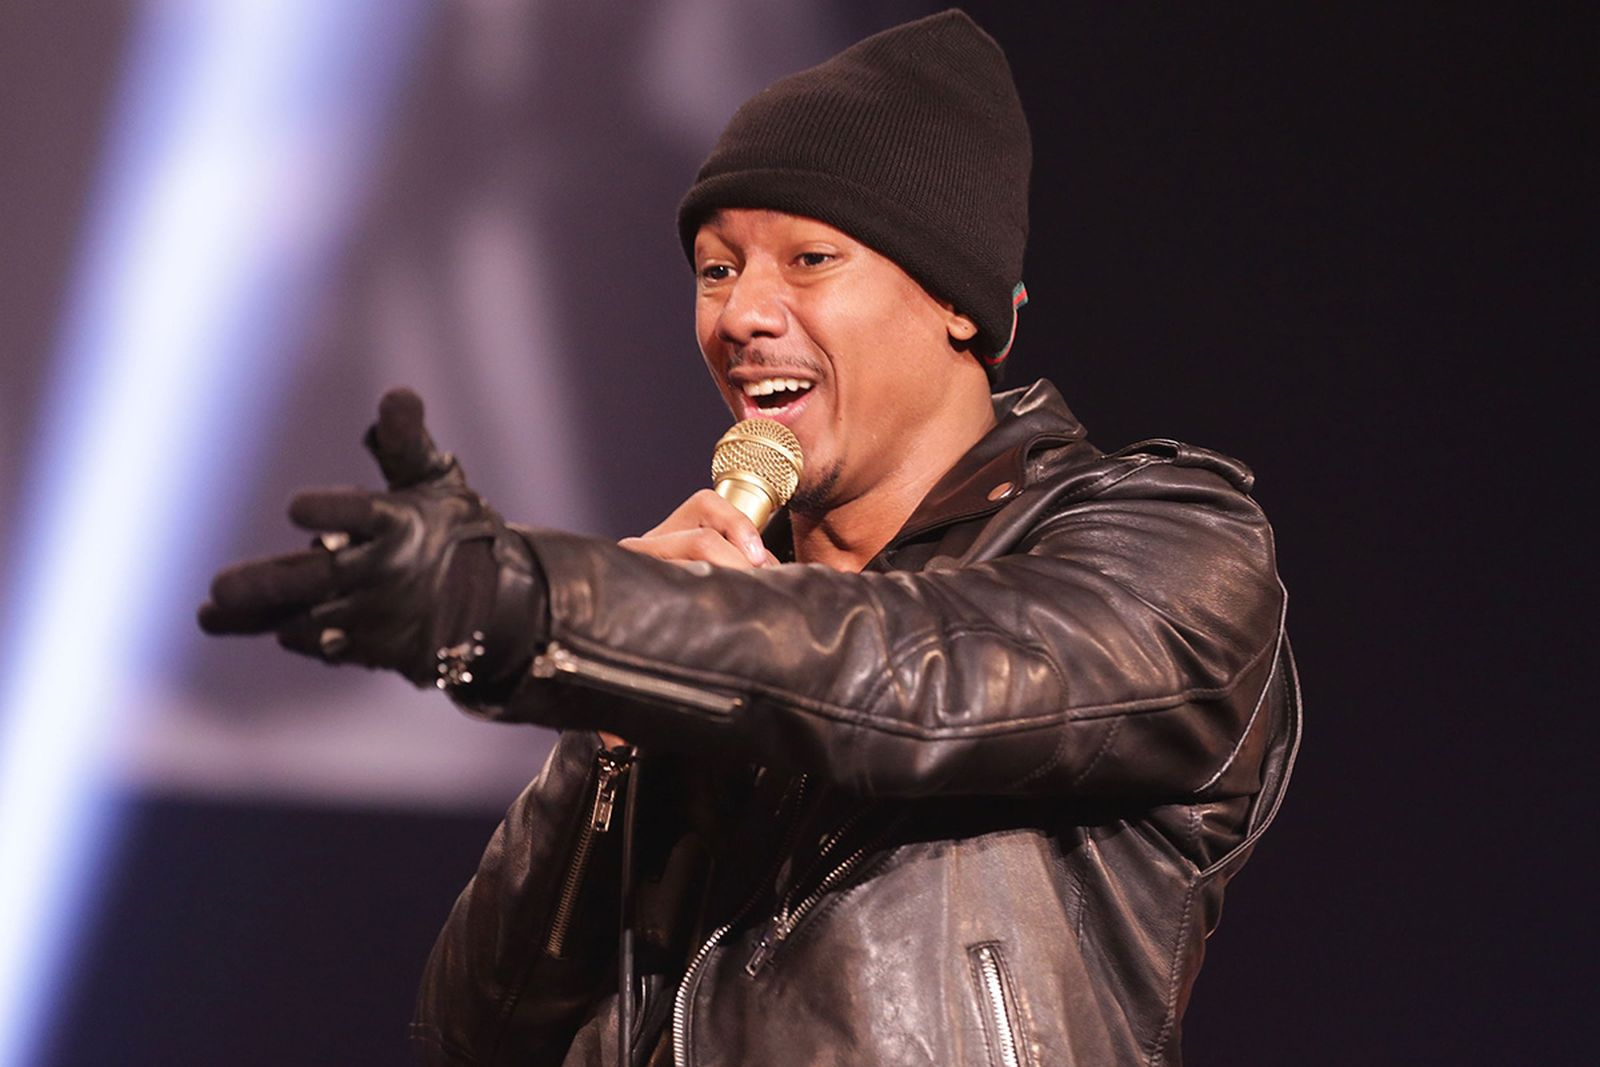 nick cannon performing on stage